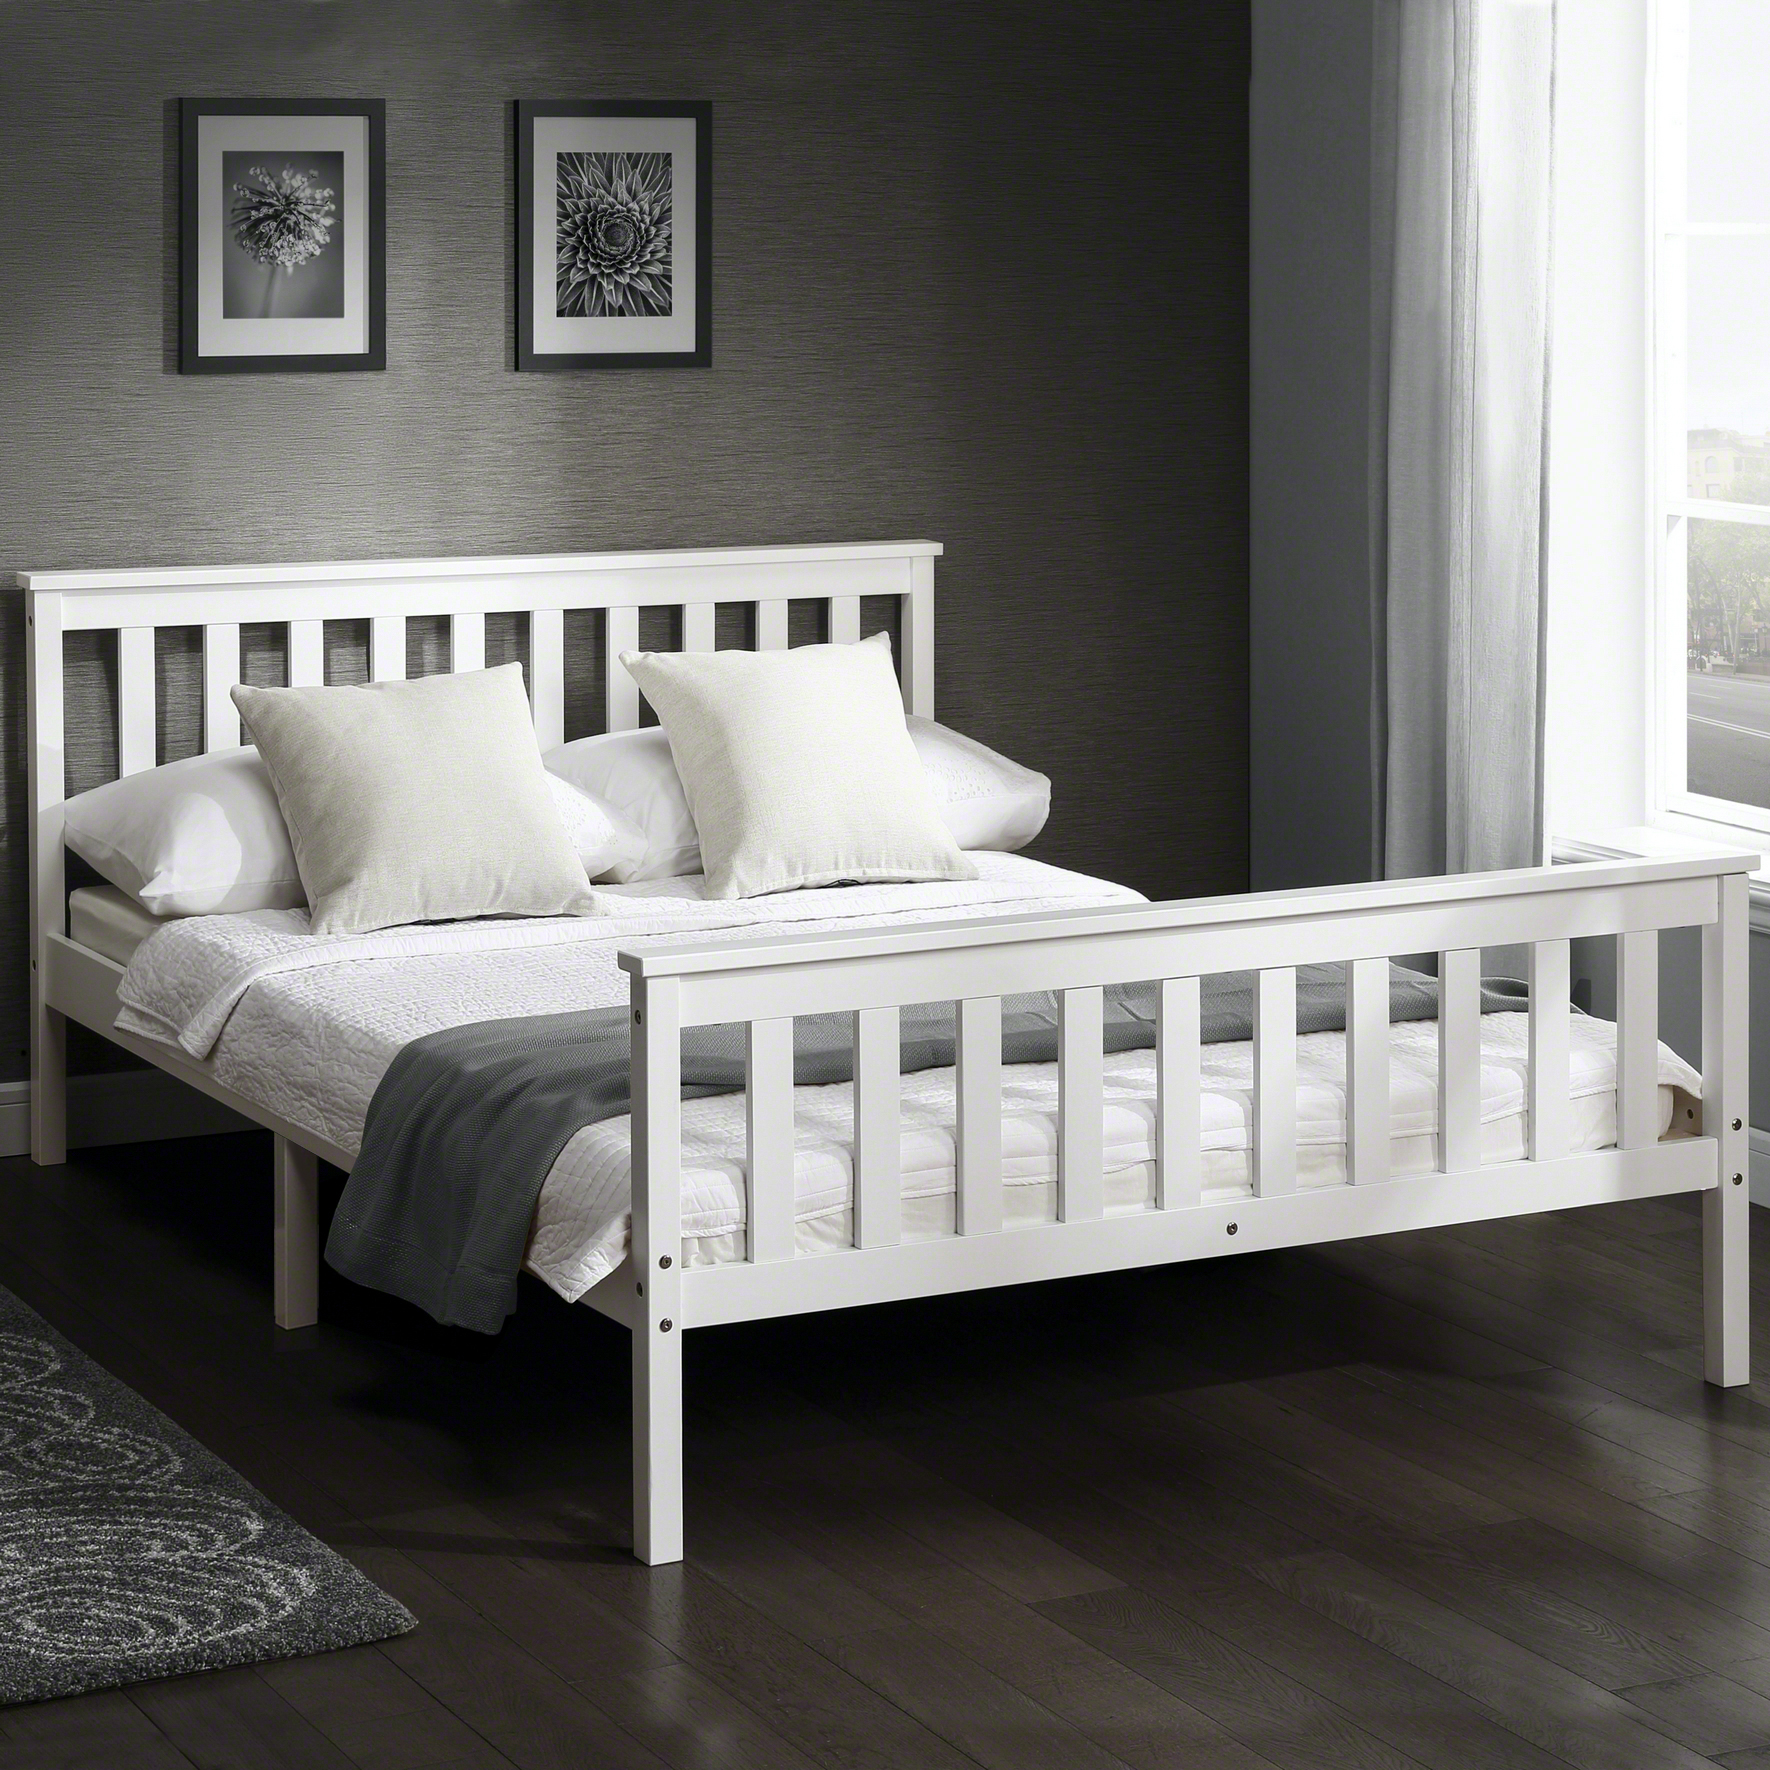 4ft6 Bed Frame Details About Laura James Double 4ft6 Wooden Bed Frame In White